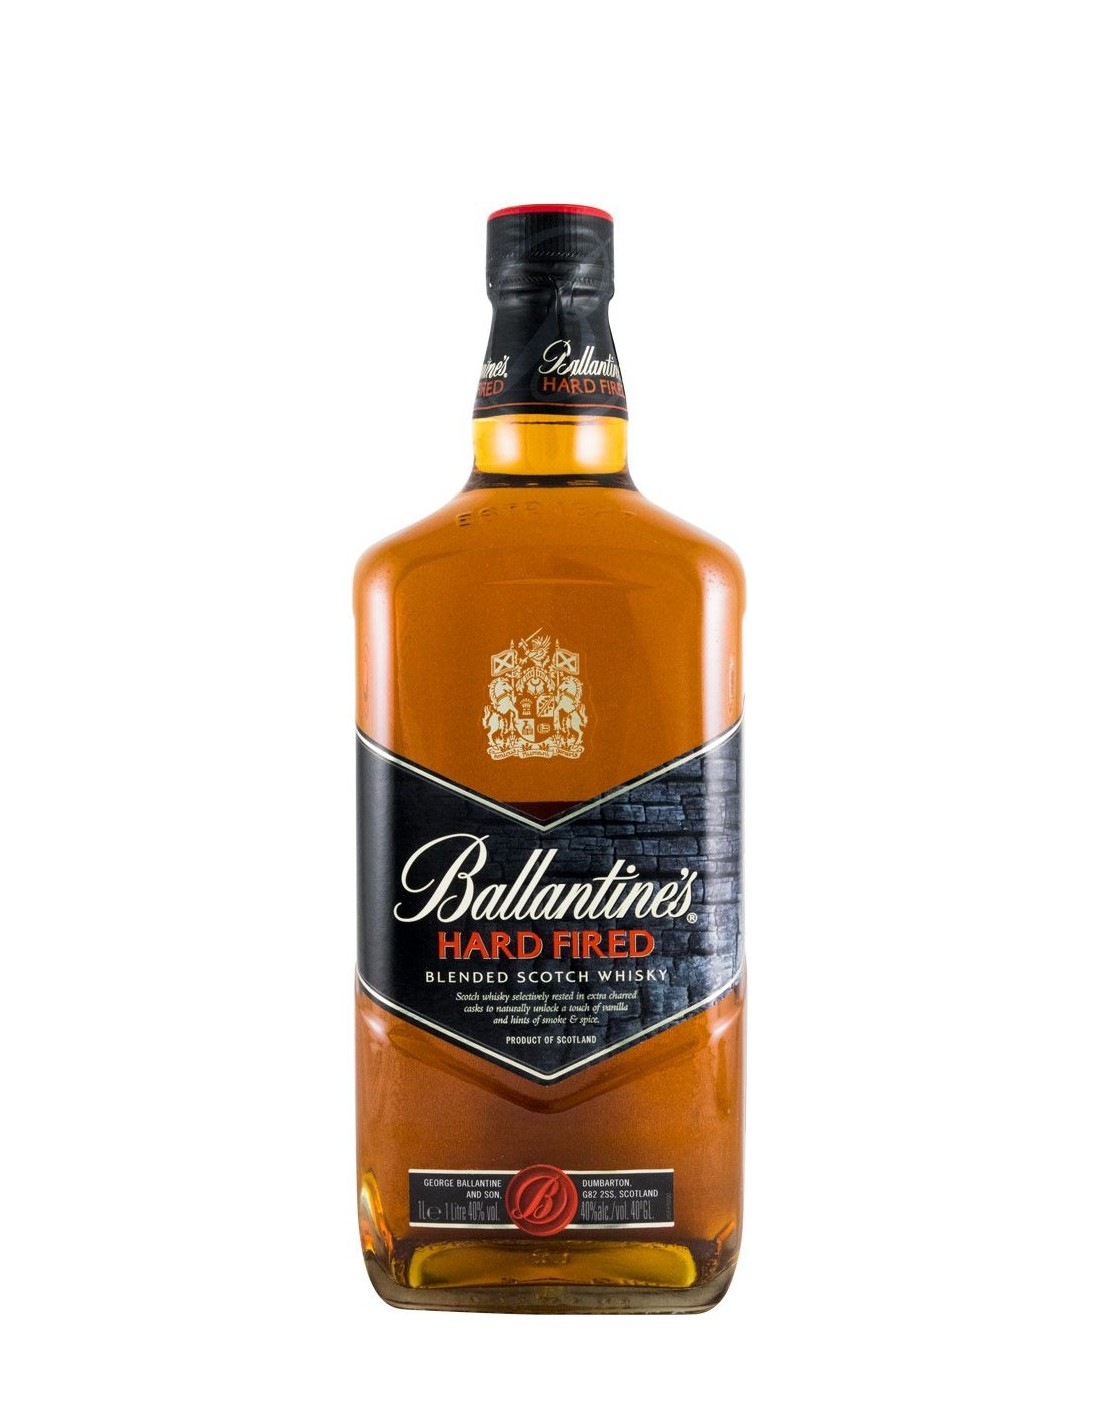 Whisky Ballantine's Hard Fired, 40% alc., 1L, Scotia